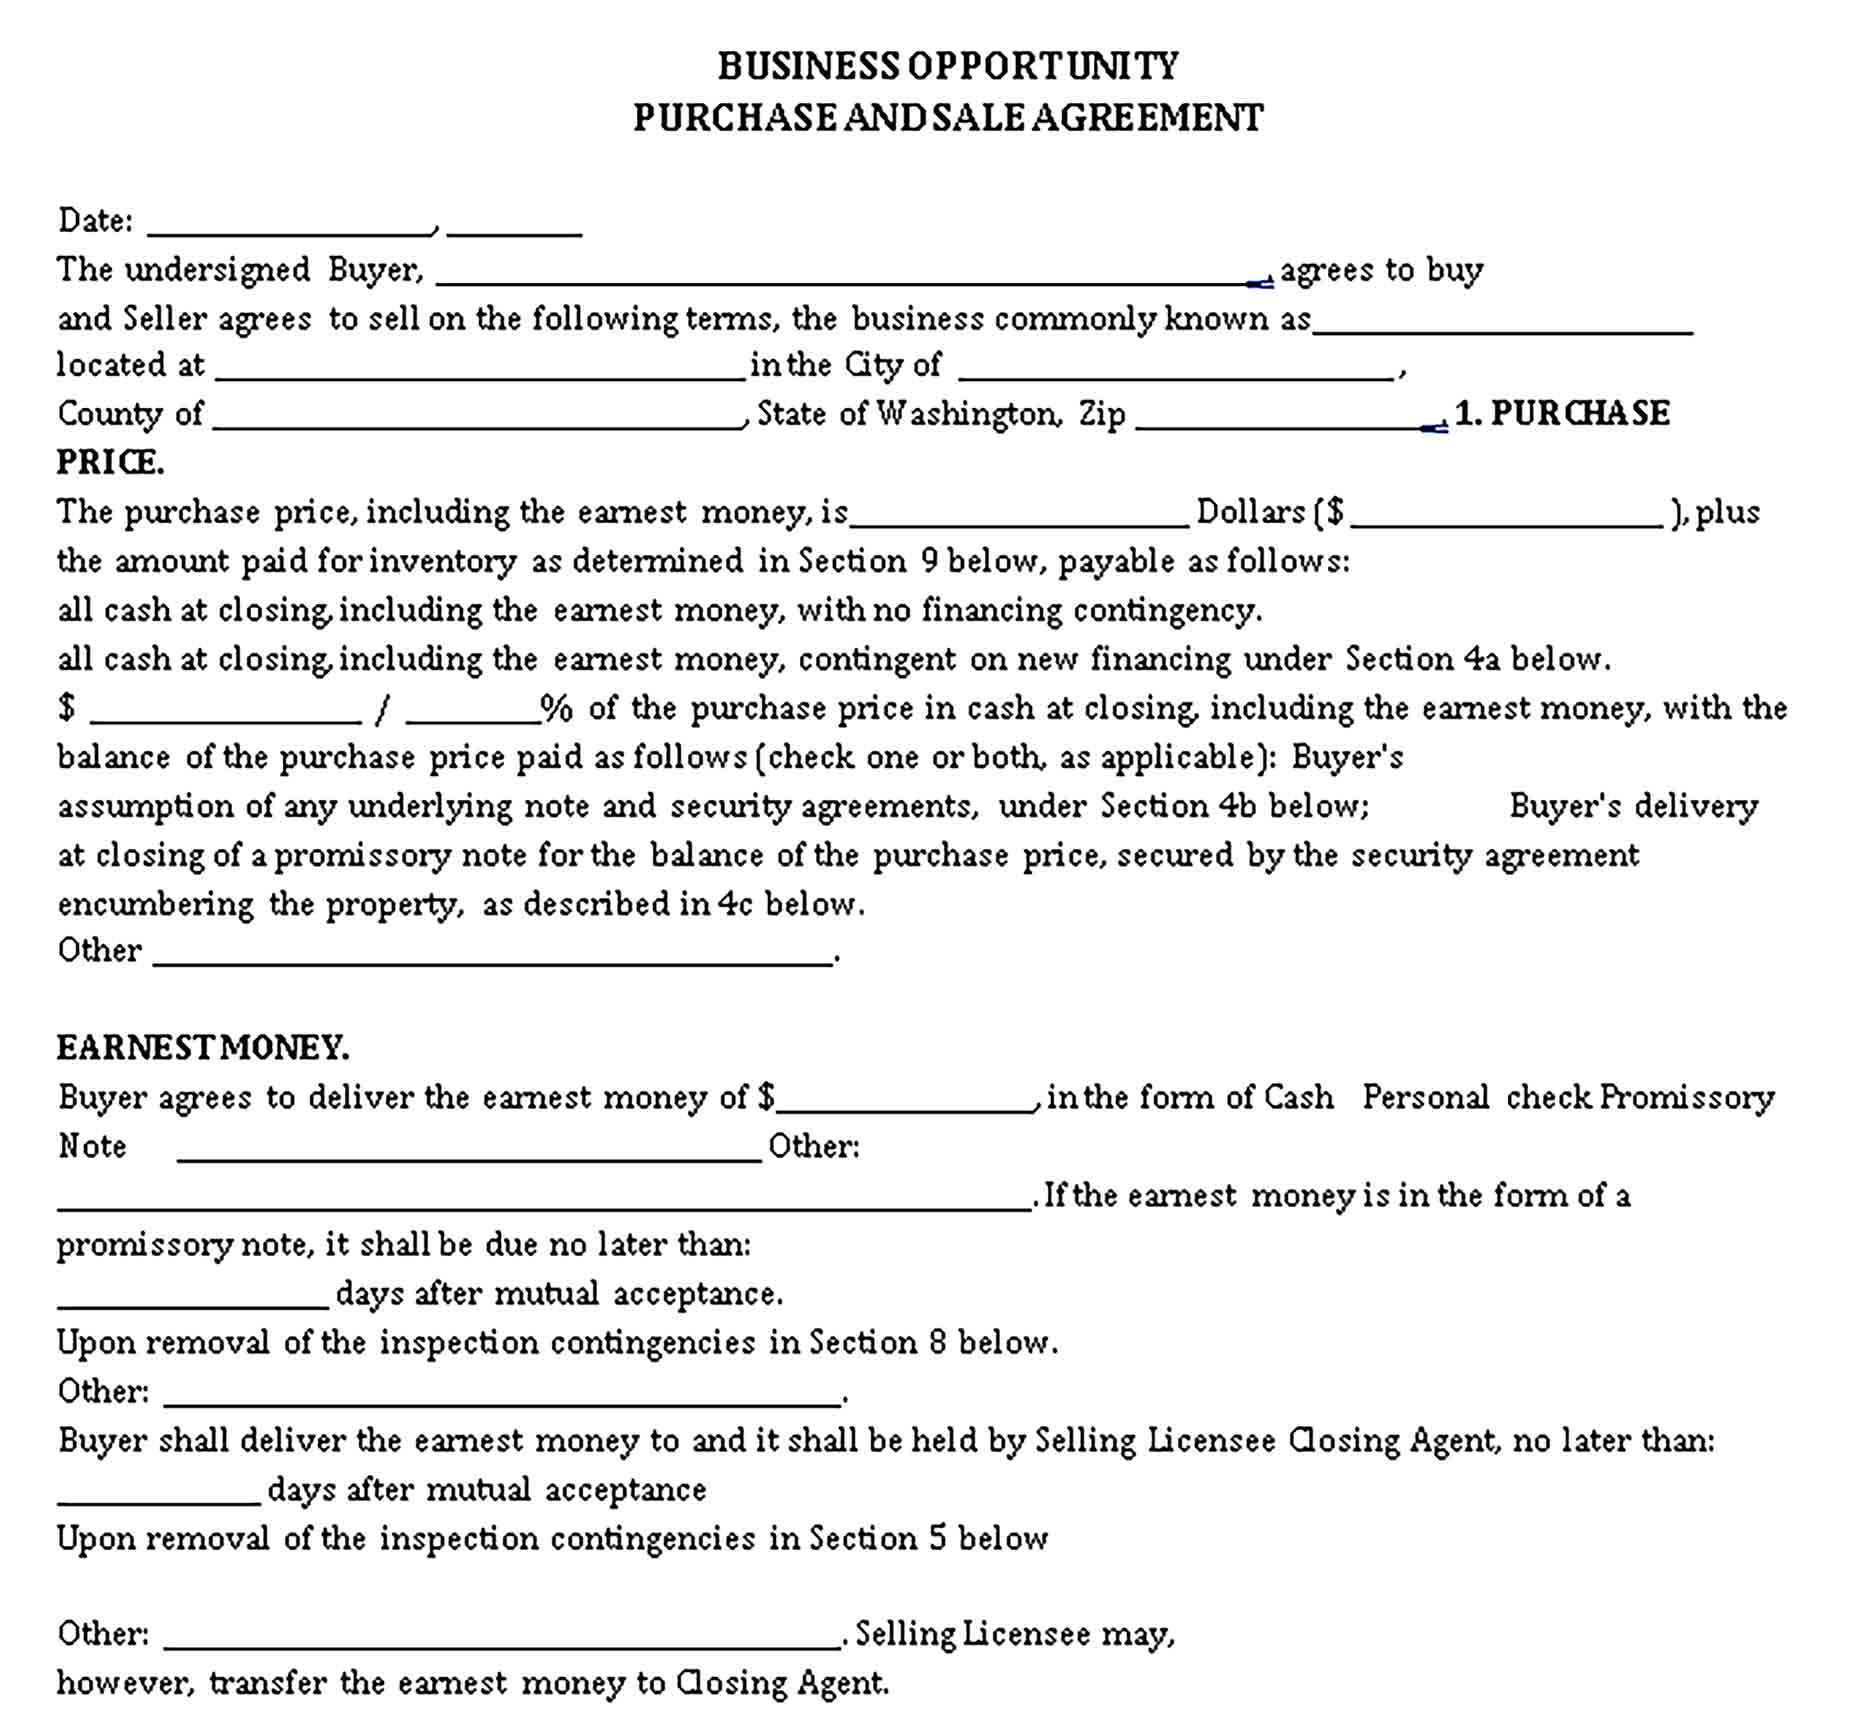 Templates Business Opportunity Purchase Sale Agreement Sample